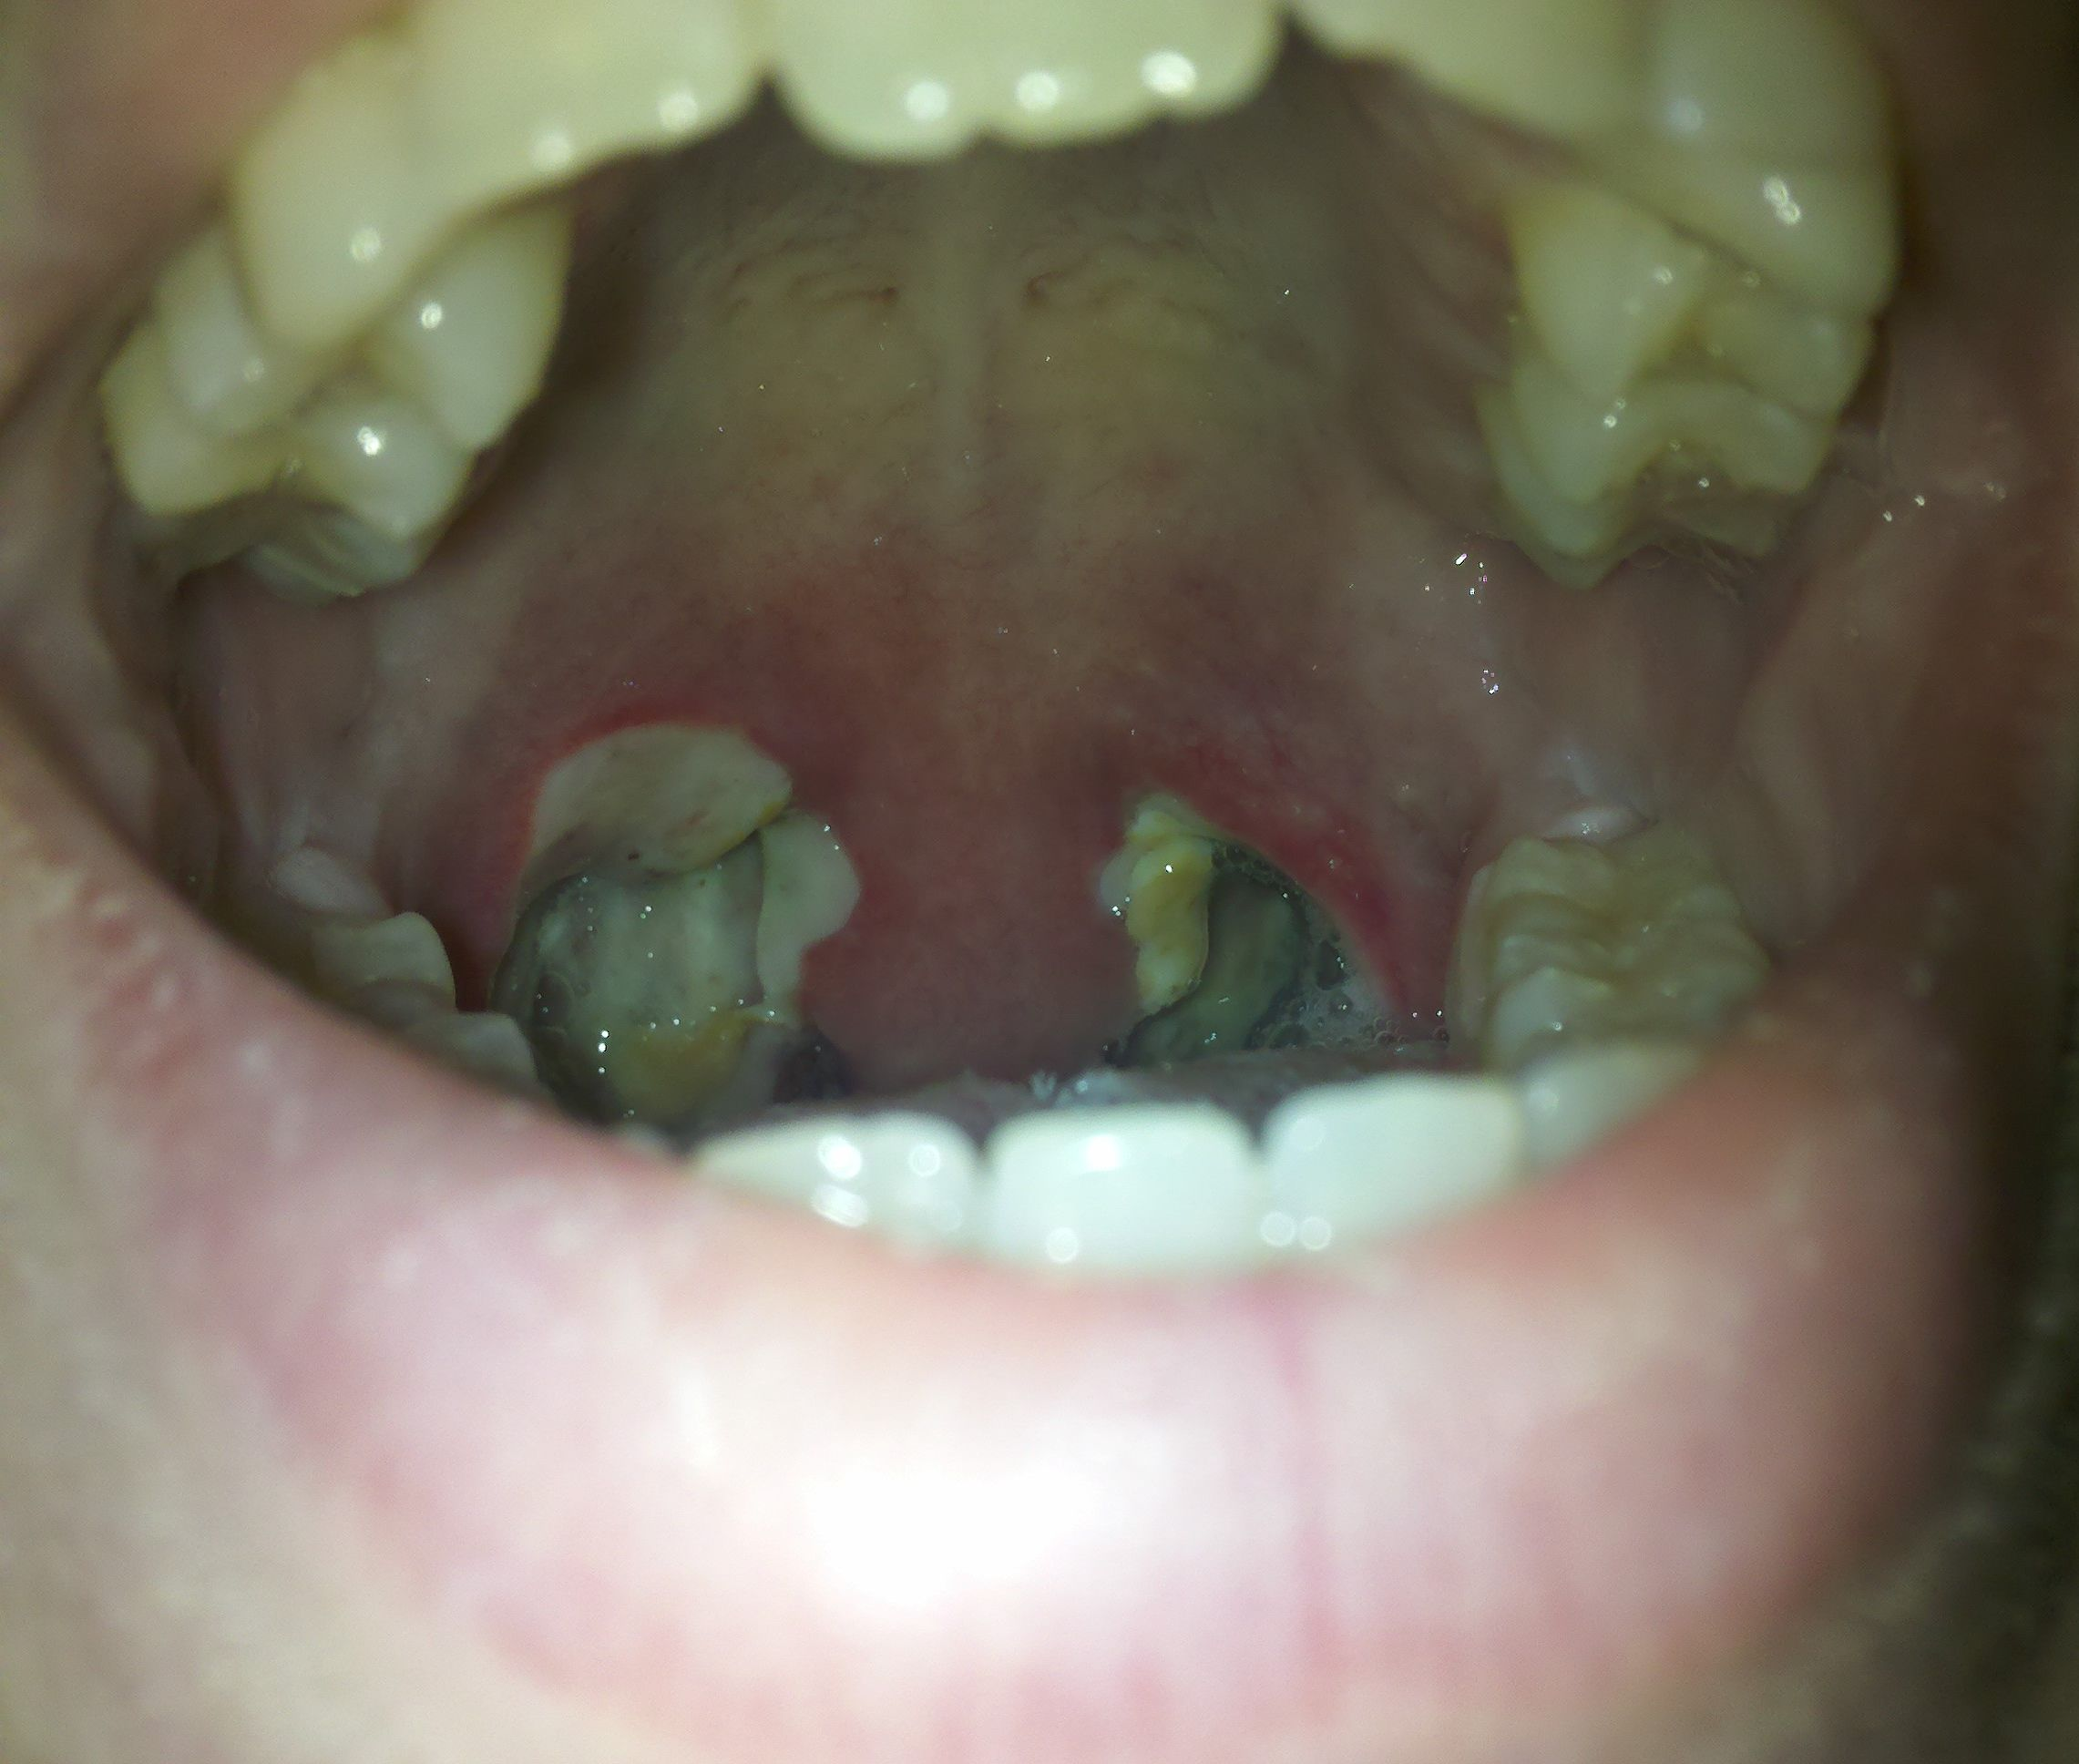 Tonsillectomy Recovery Picture Day 6